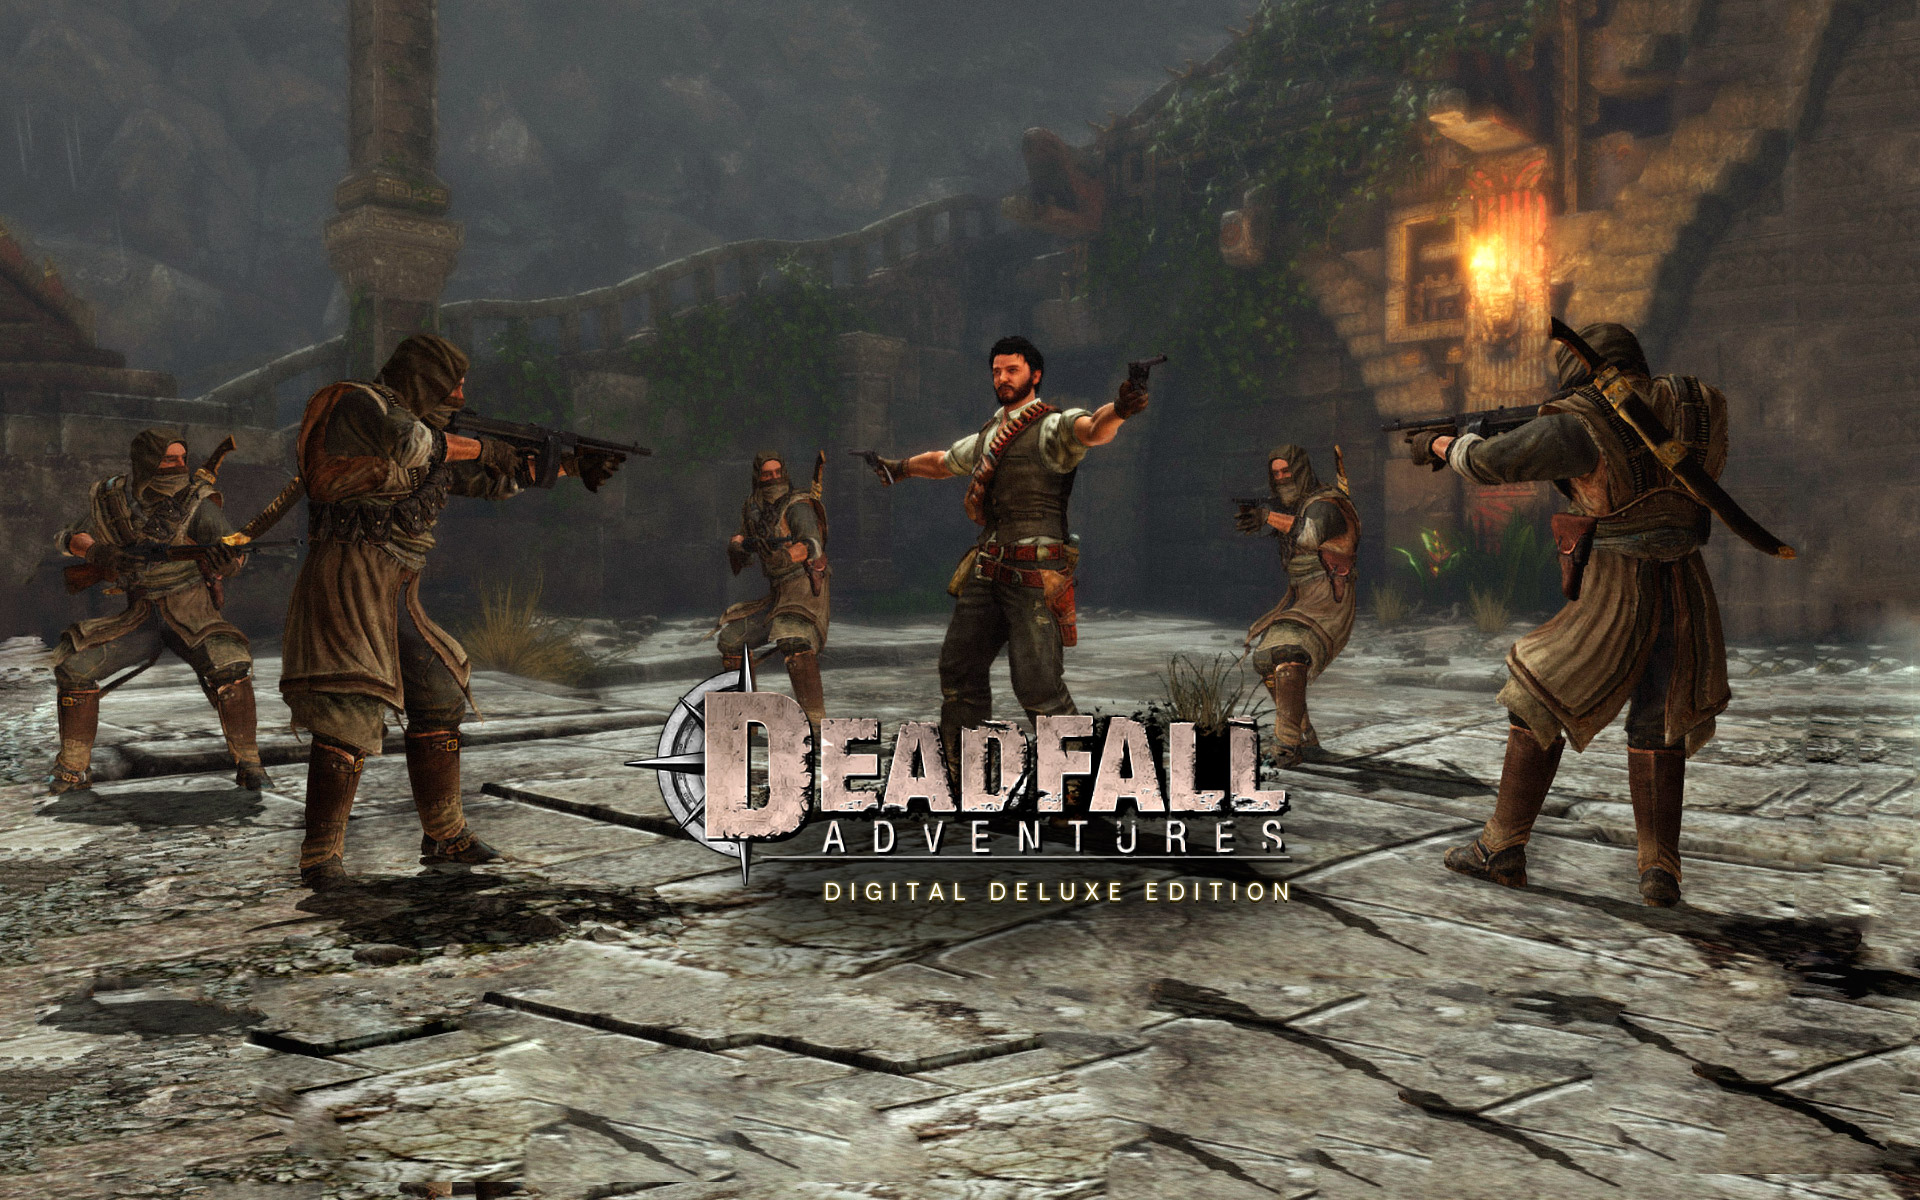 Deadfall Adventures - Digital Deluxe Edition